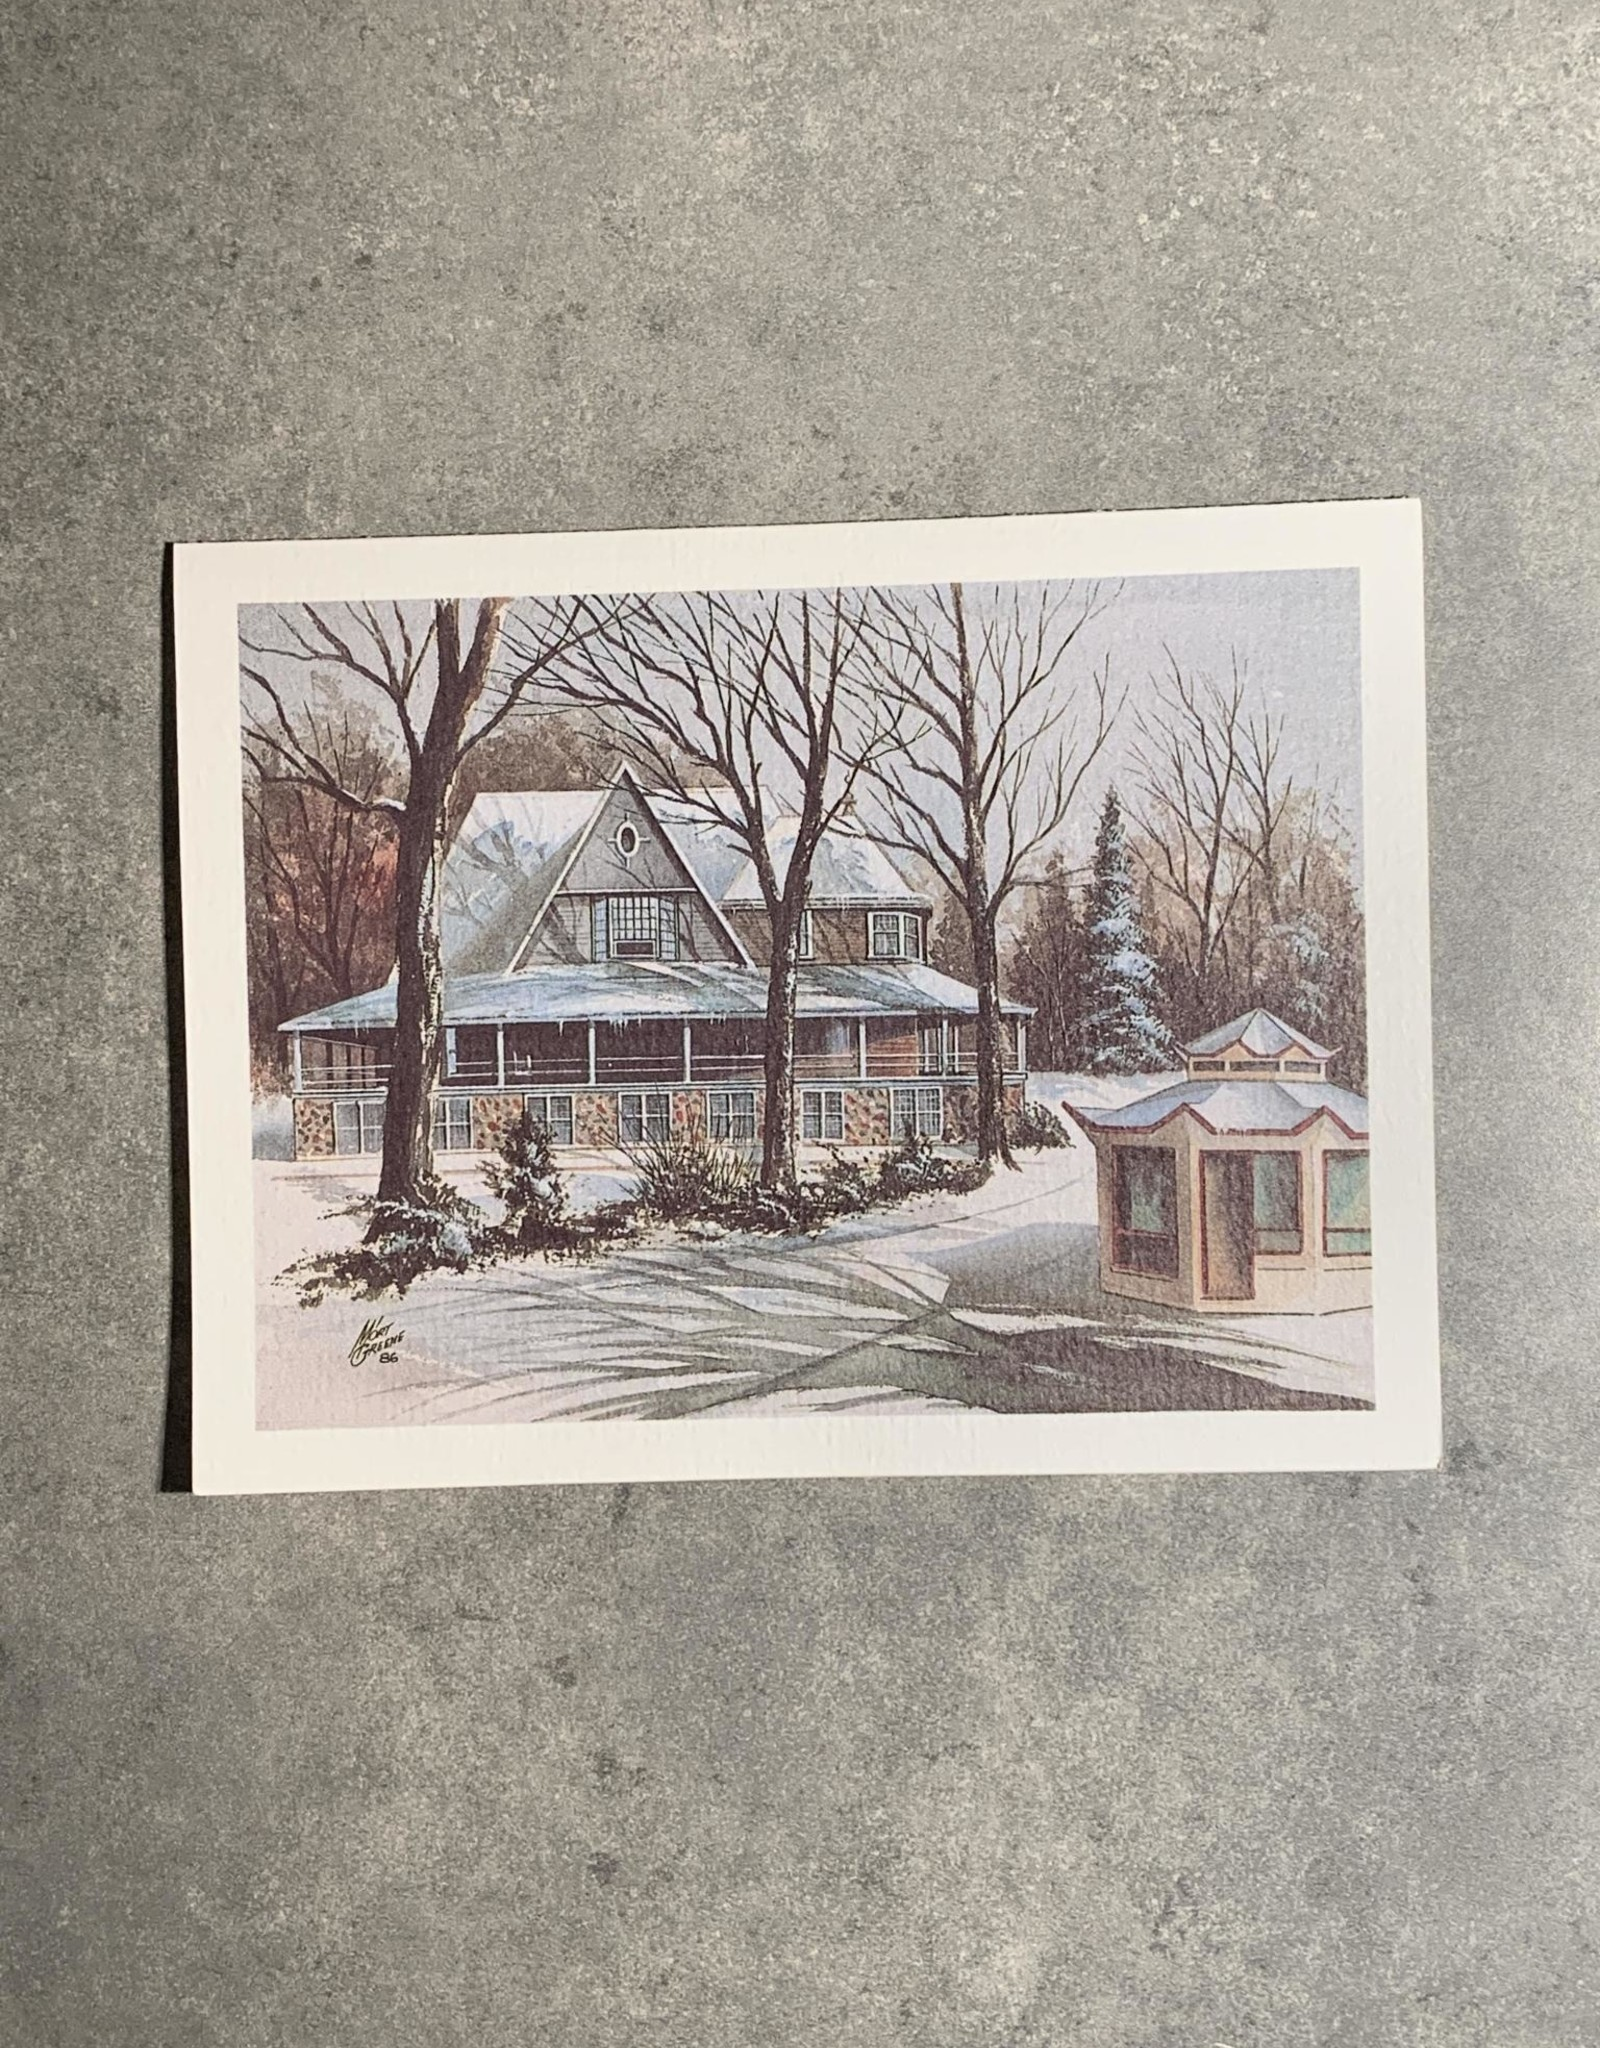 UA Merch Peoria Note Card by Mort Greene Glen Oak Park Pavilion